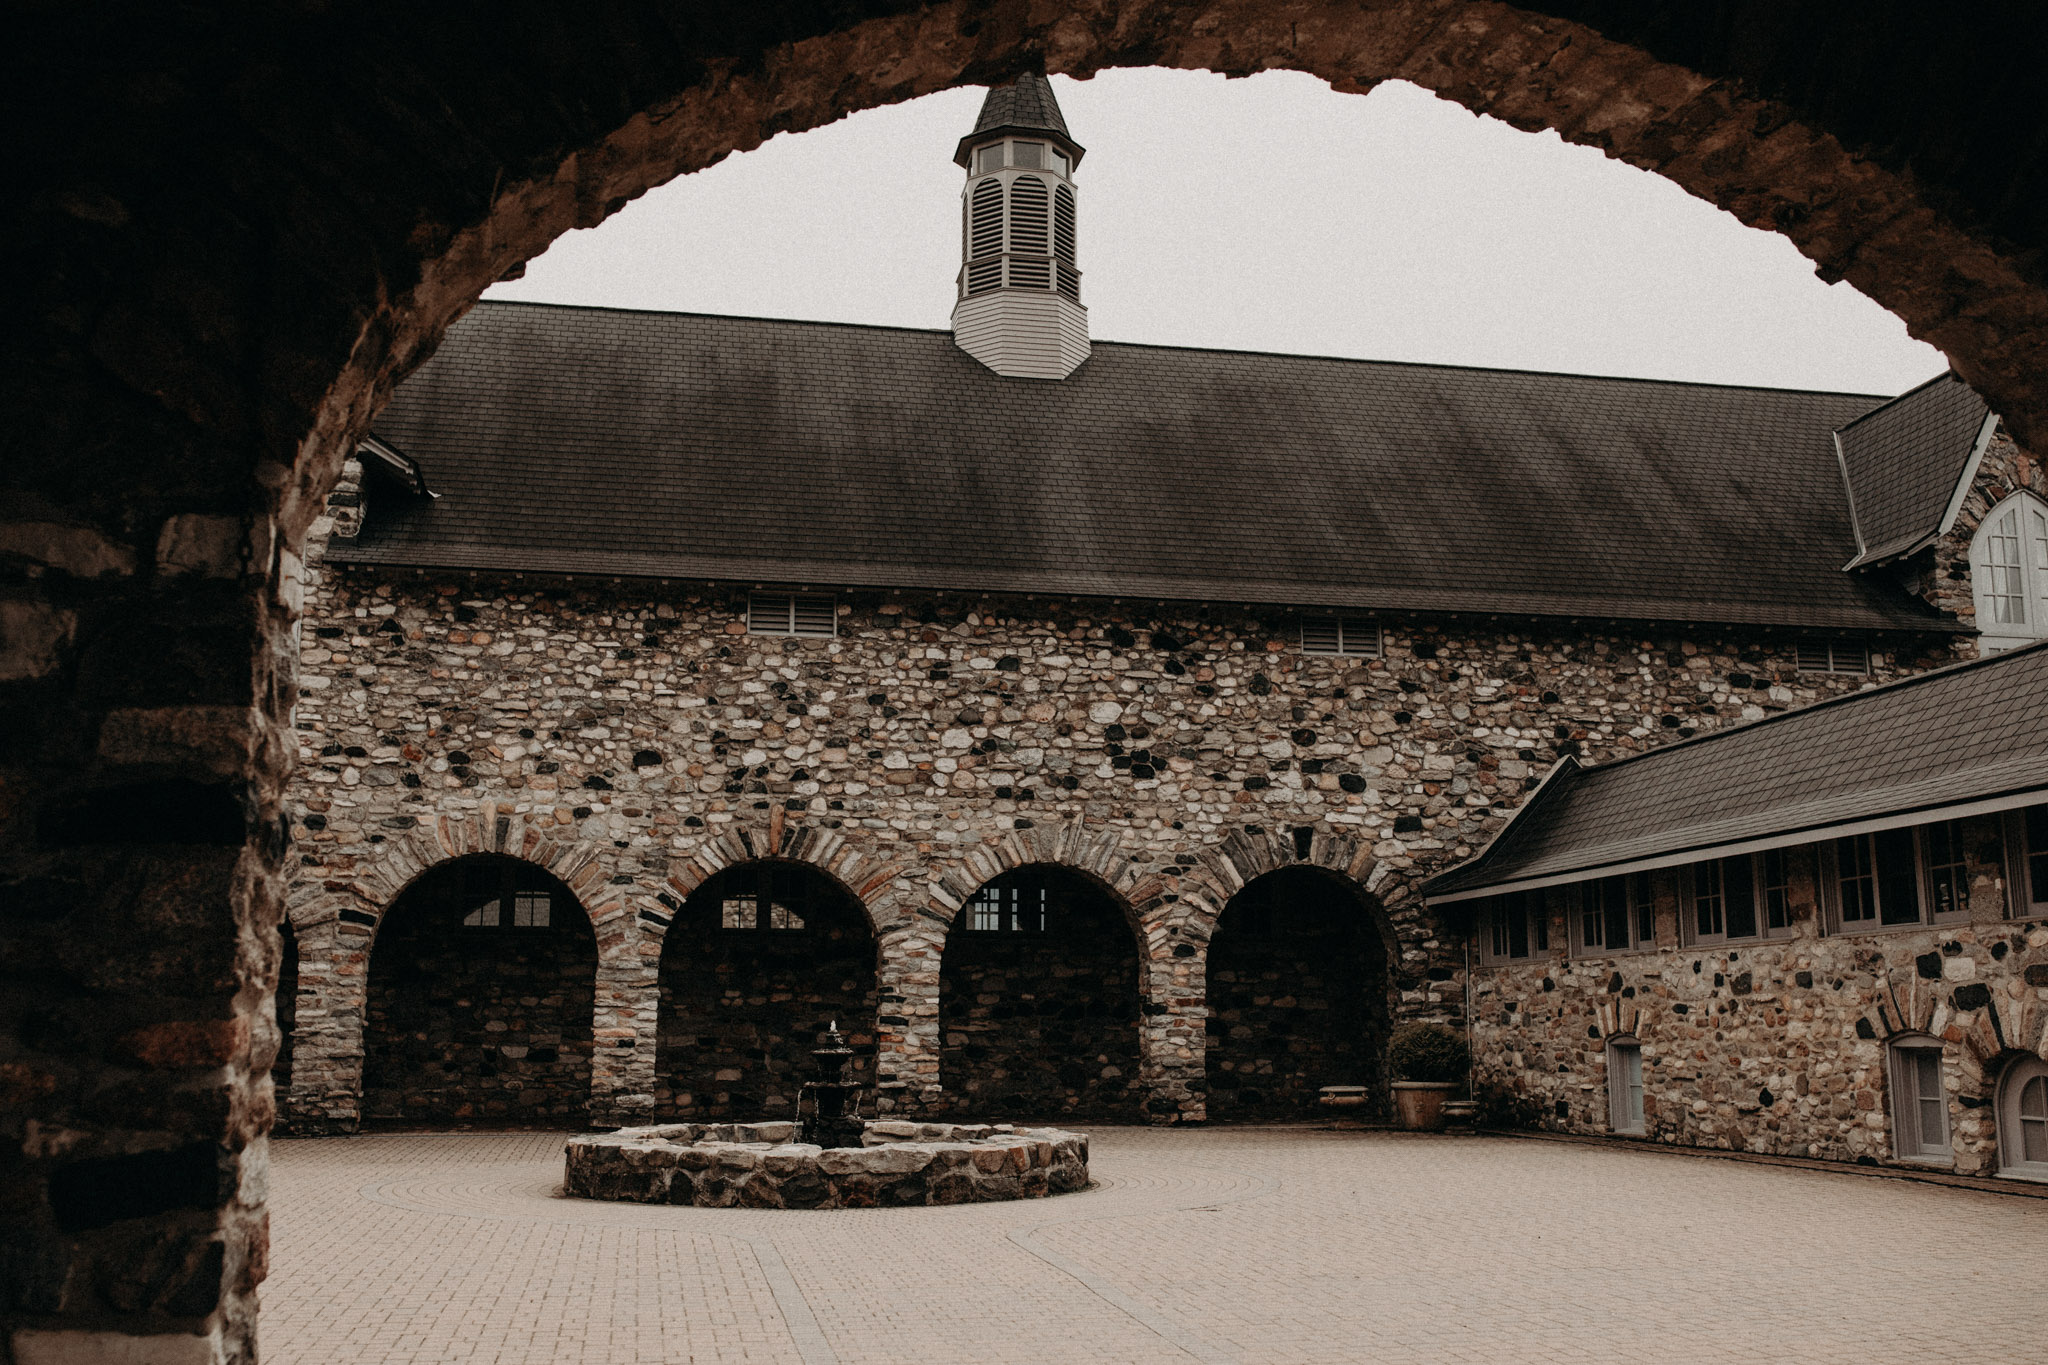 Castle Farms Wedding Venue stone wall with arches